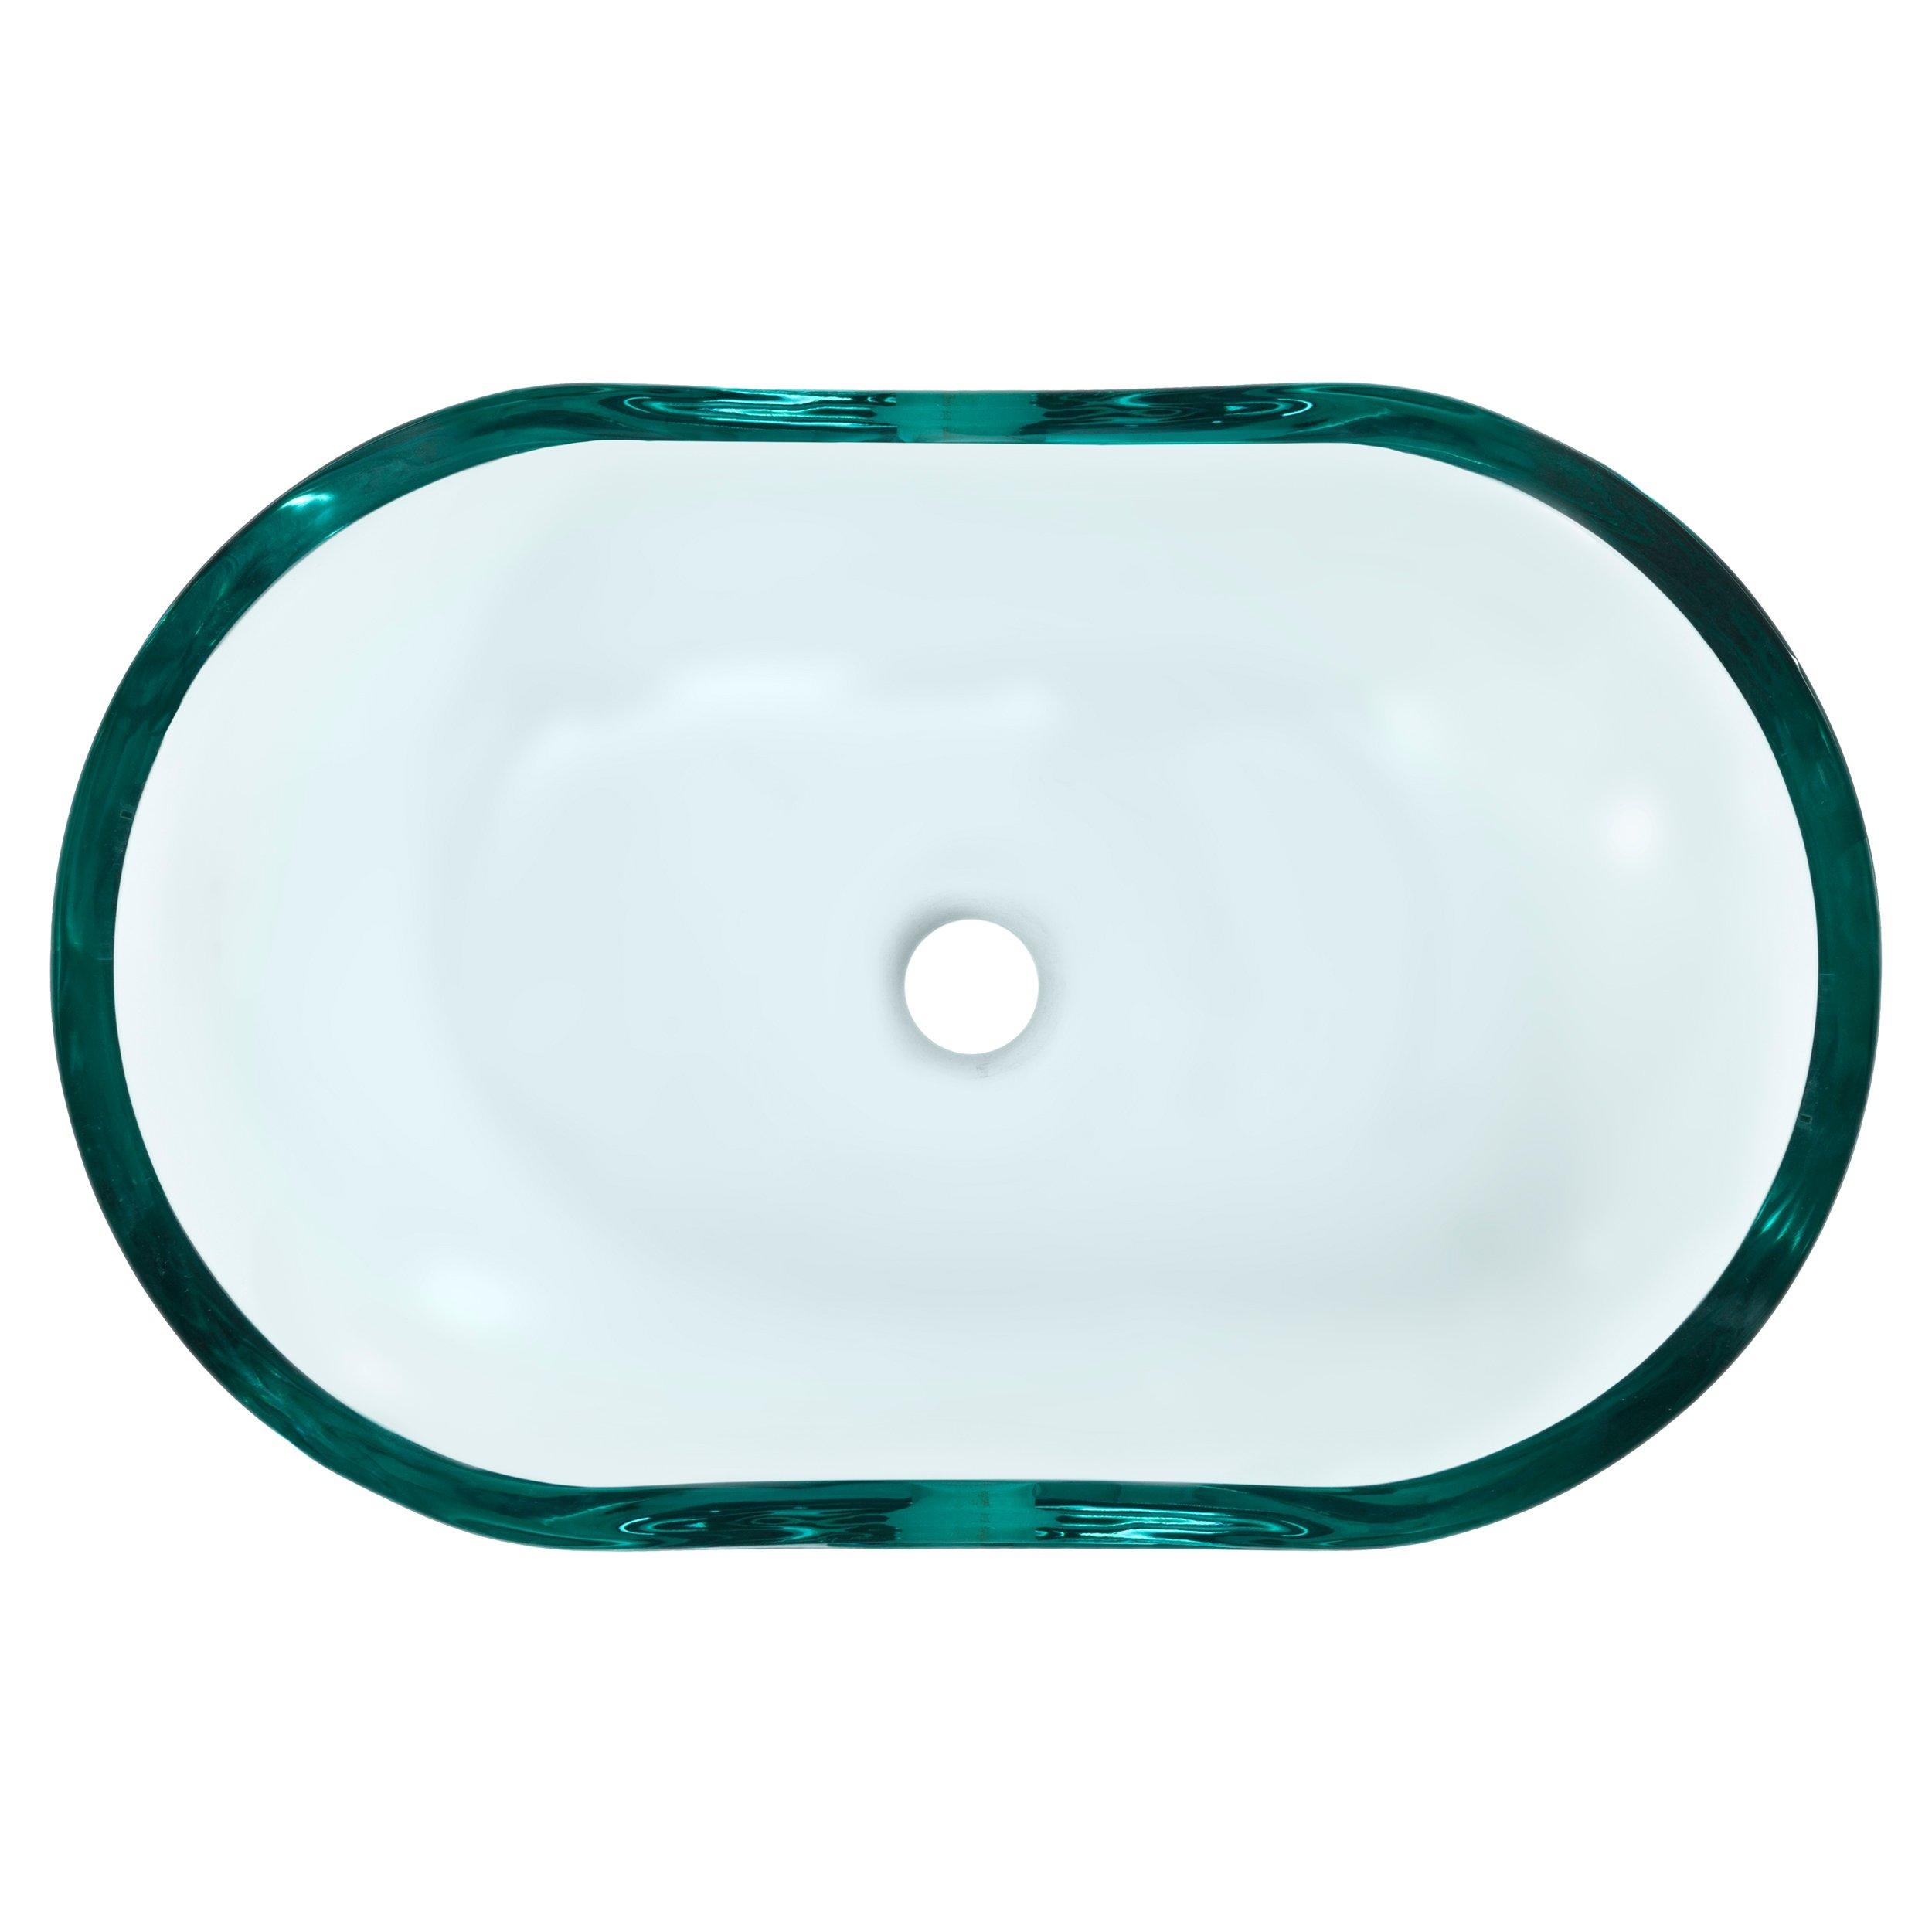 Square Basin Glass Vessel Sink 14 X 23 937400126 Floor And Decor